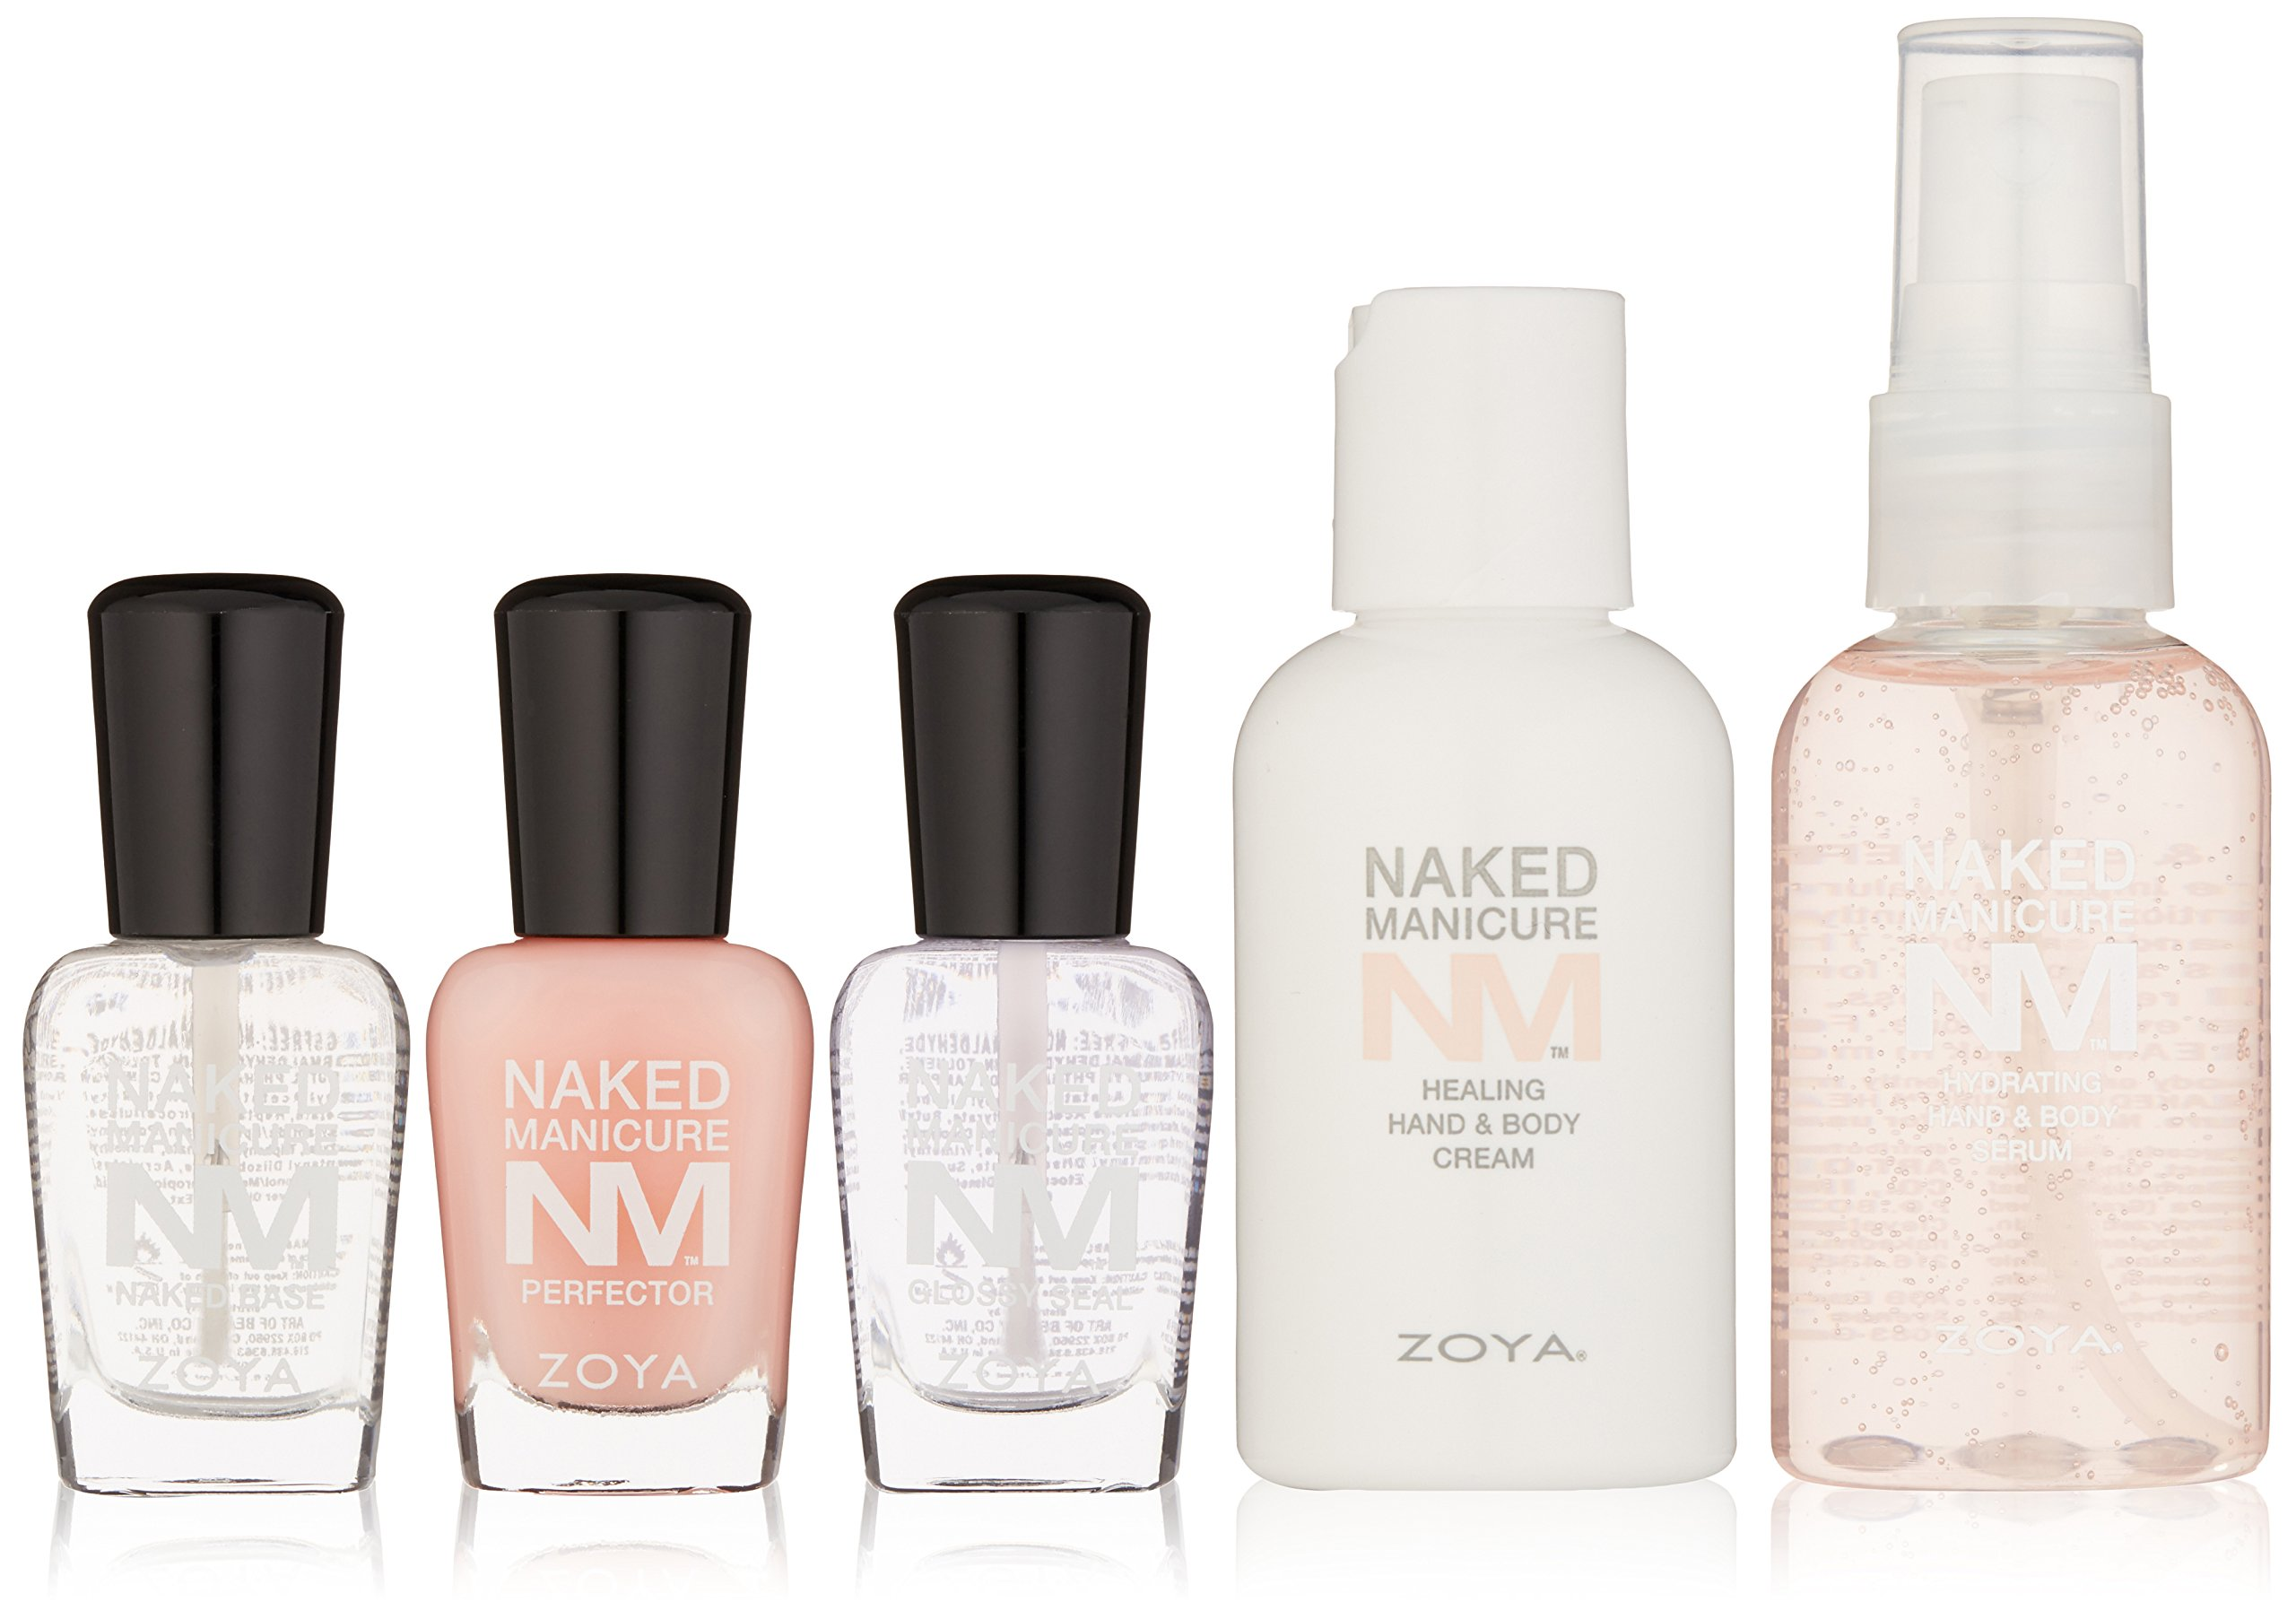 Zoya Naked Manicure Hydrate & Heal Kit by ZOYA